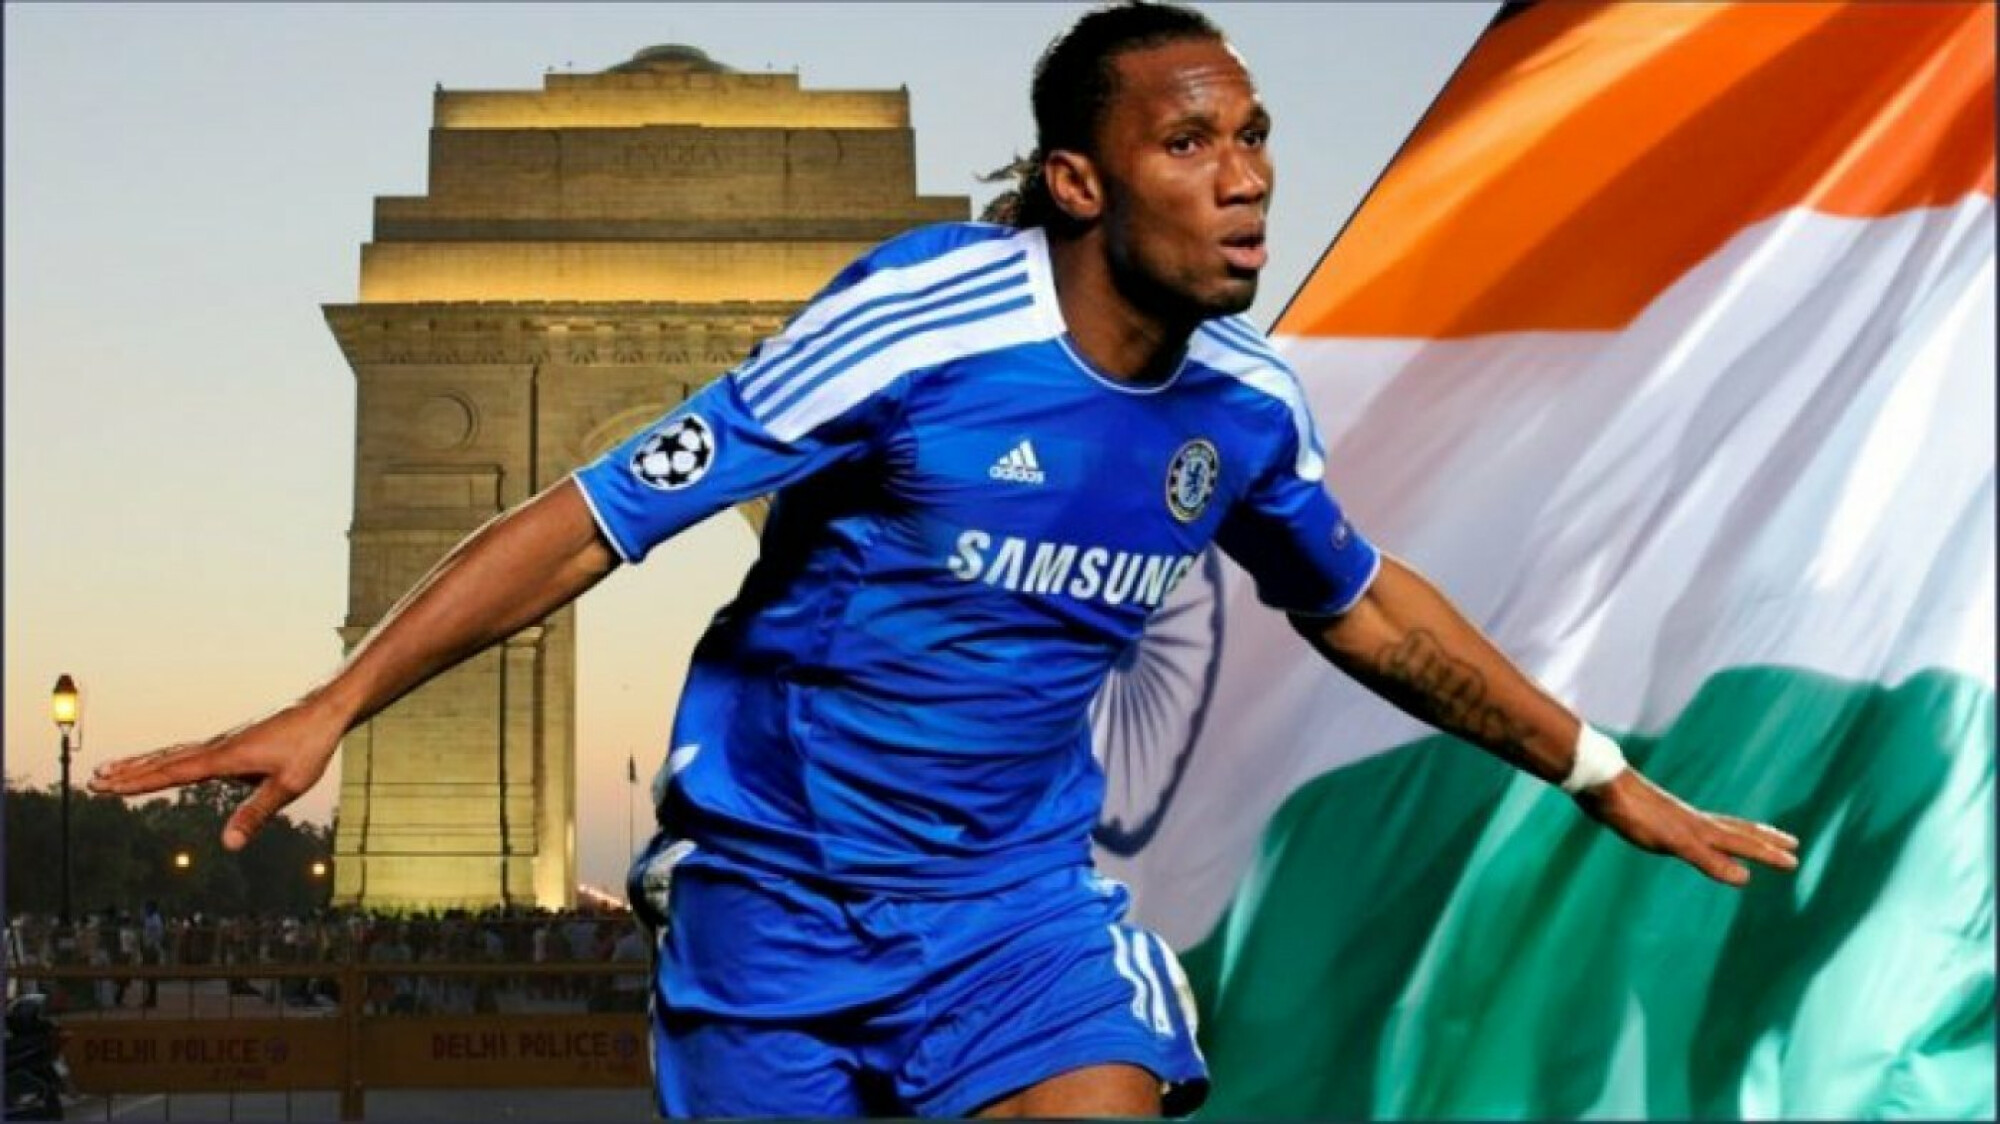 Didier Drogba set to visit India this month